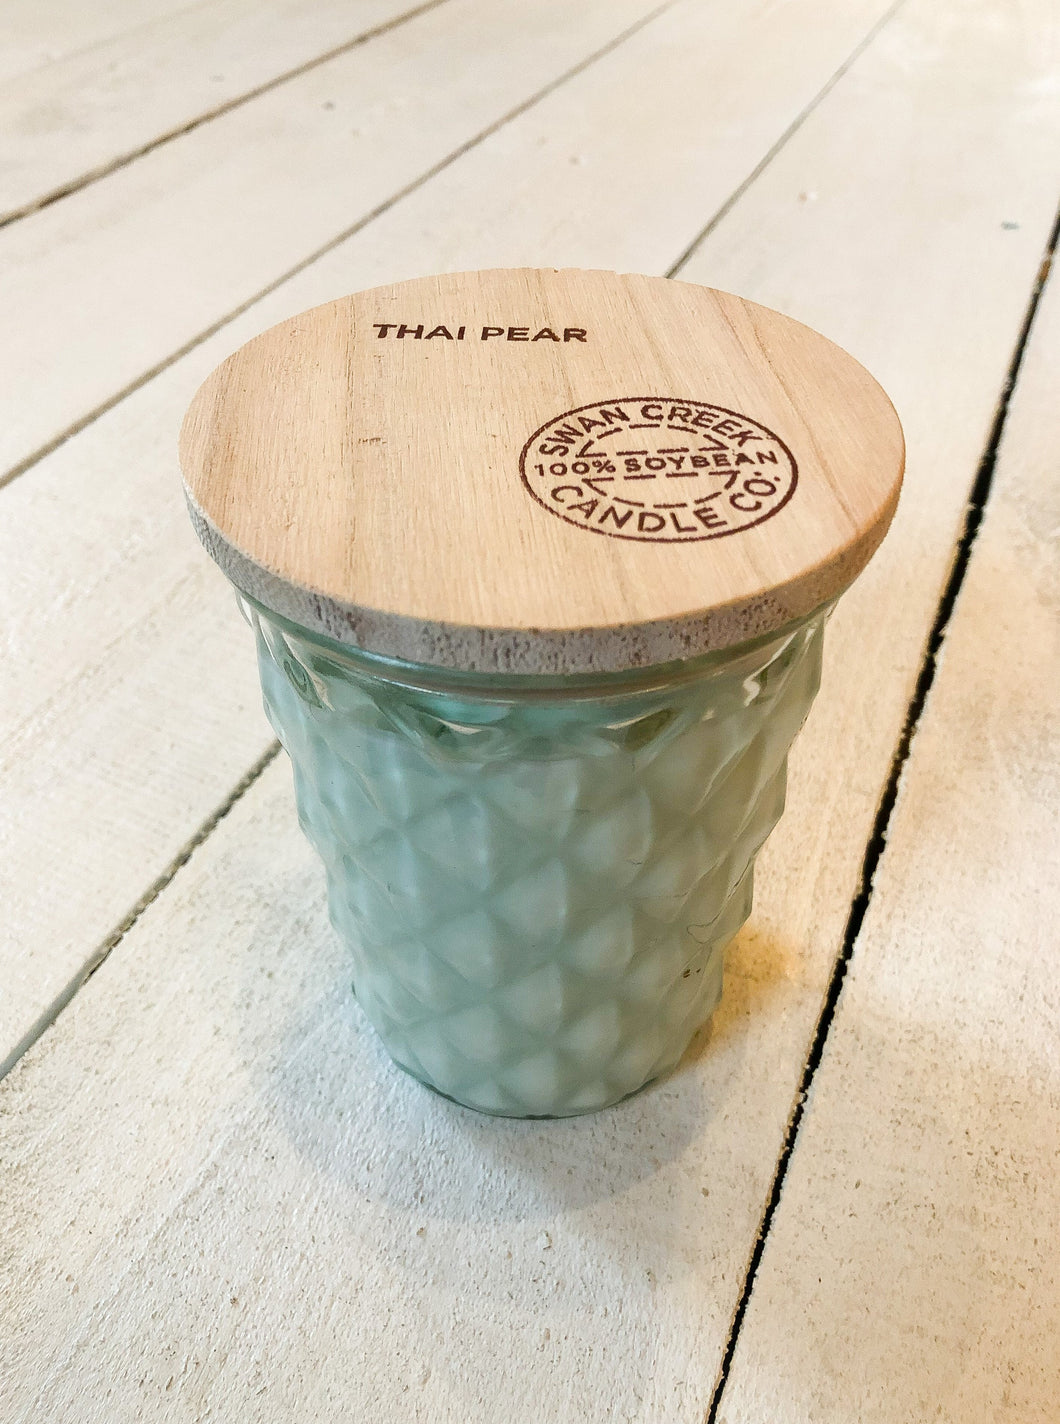 Swan Creek Candle Co- Thai Pear